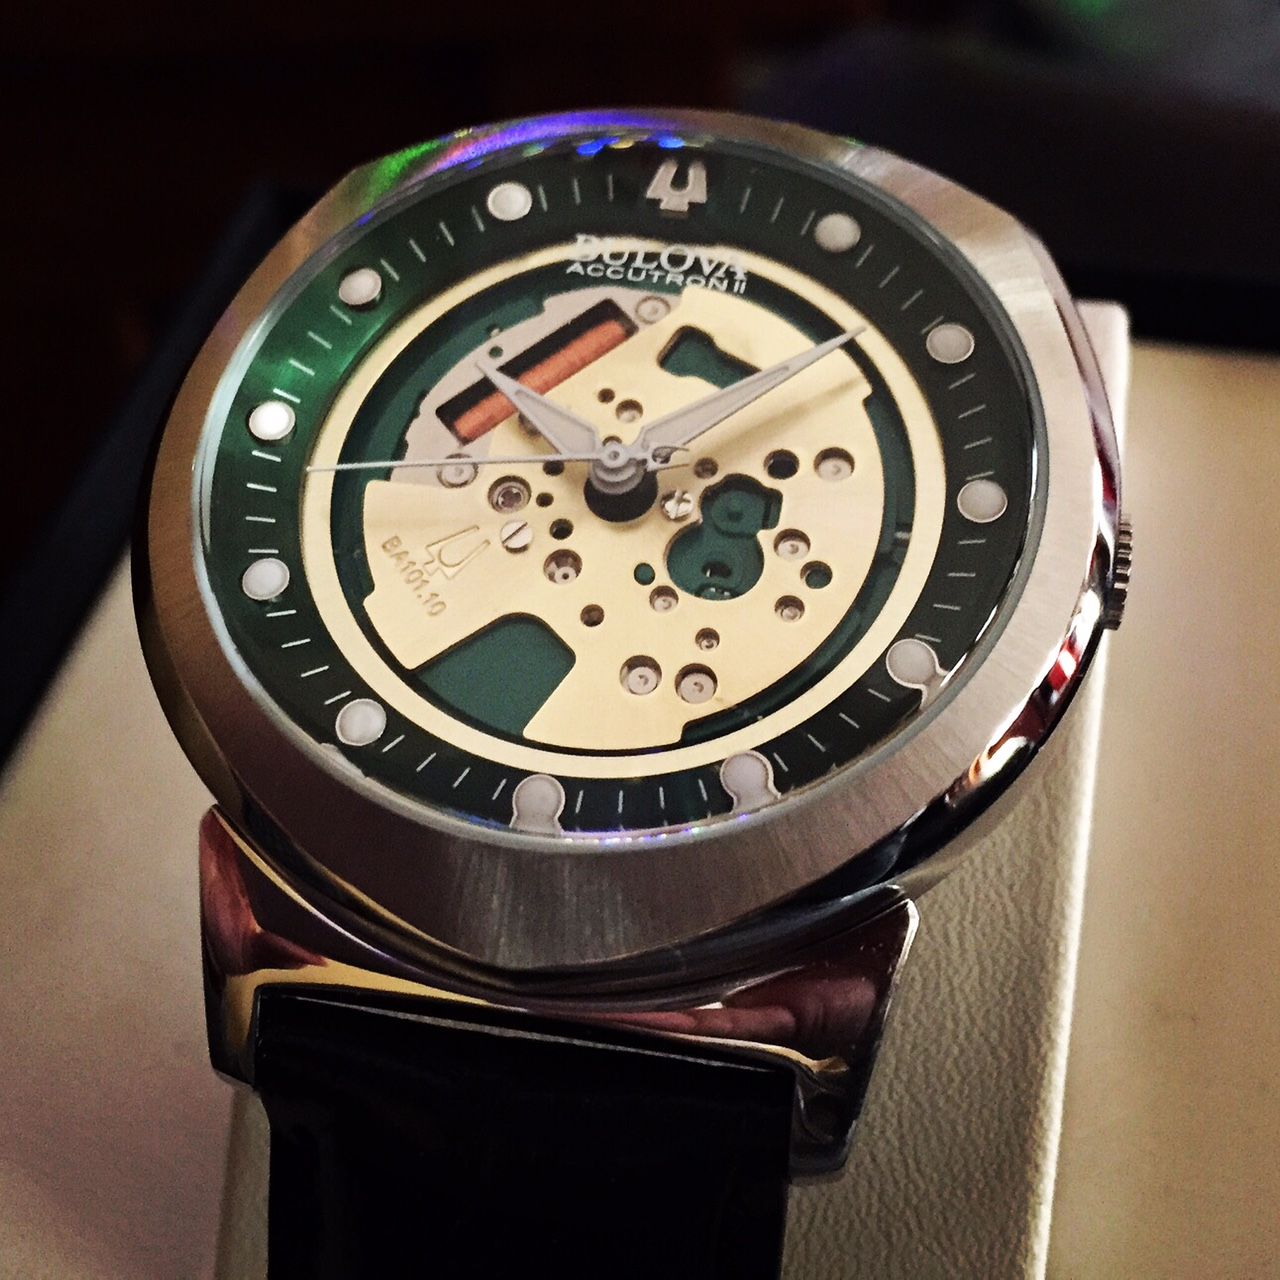 5a2403fe6 The Spaceview Reborn: The Accutron II Alpha